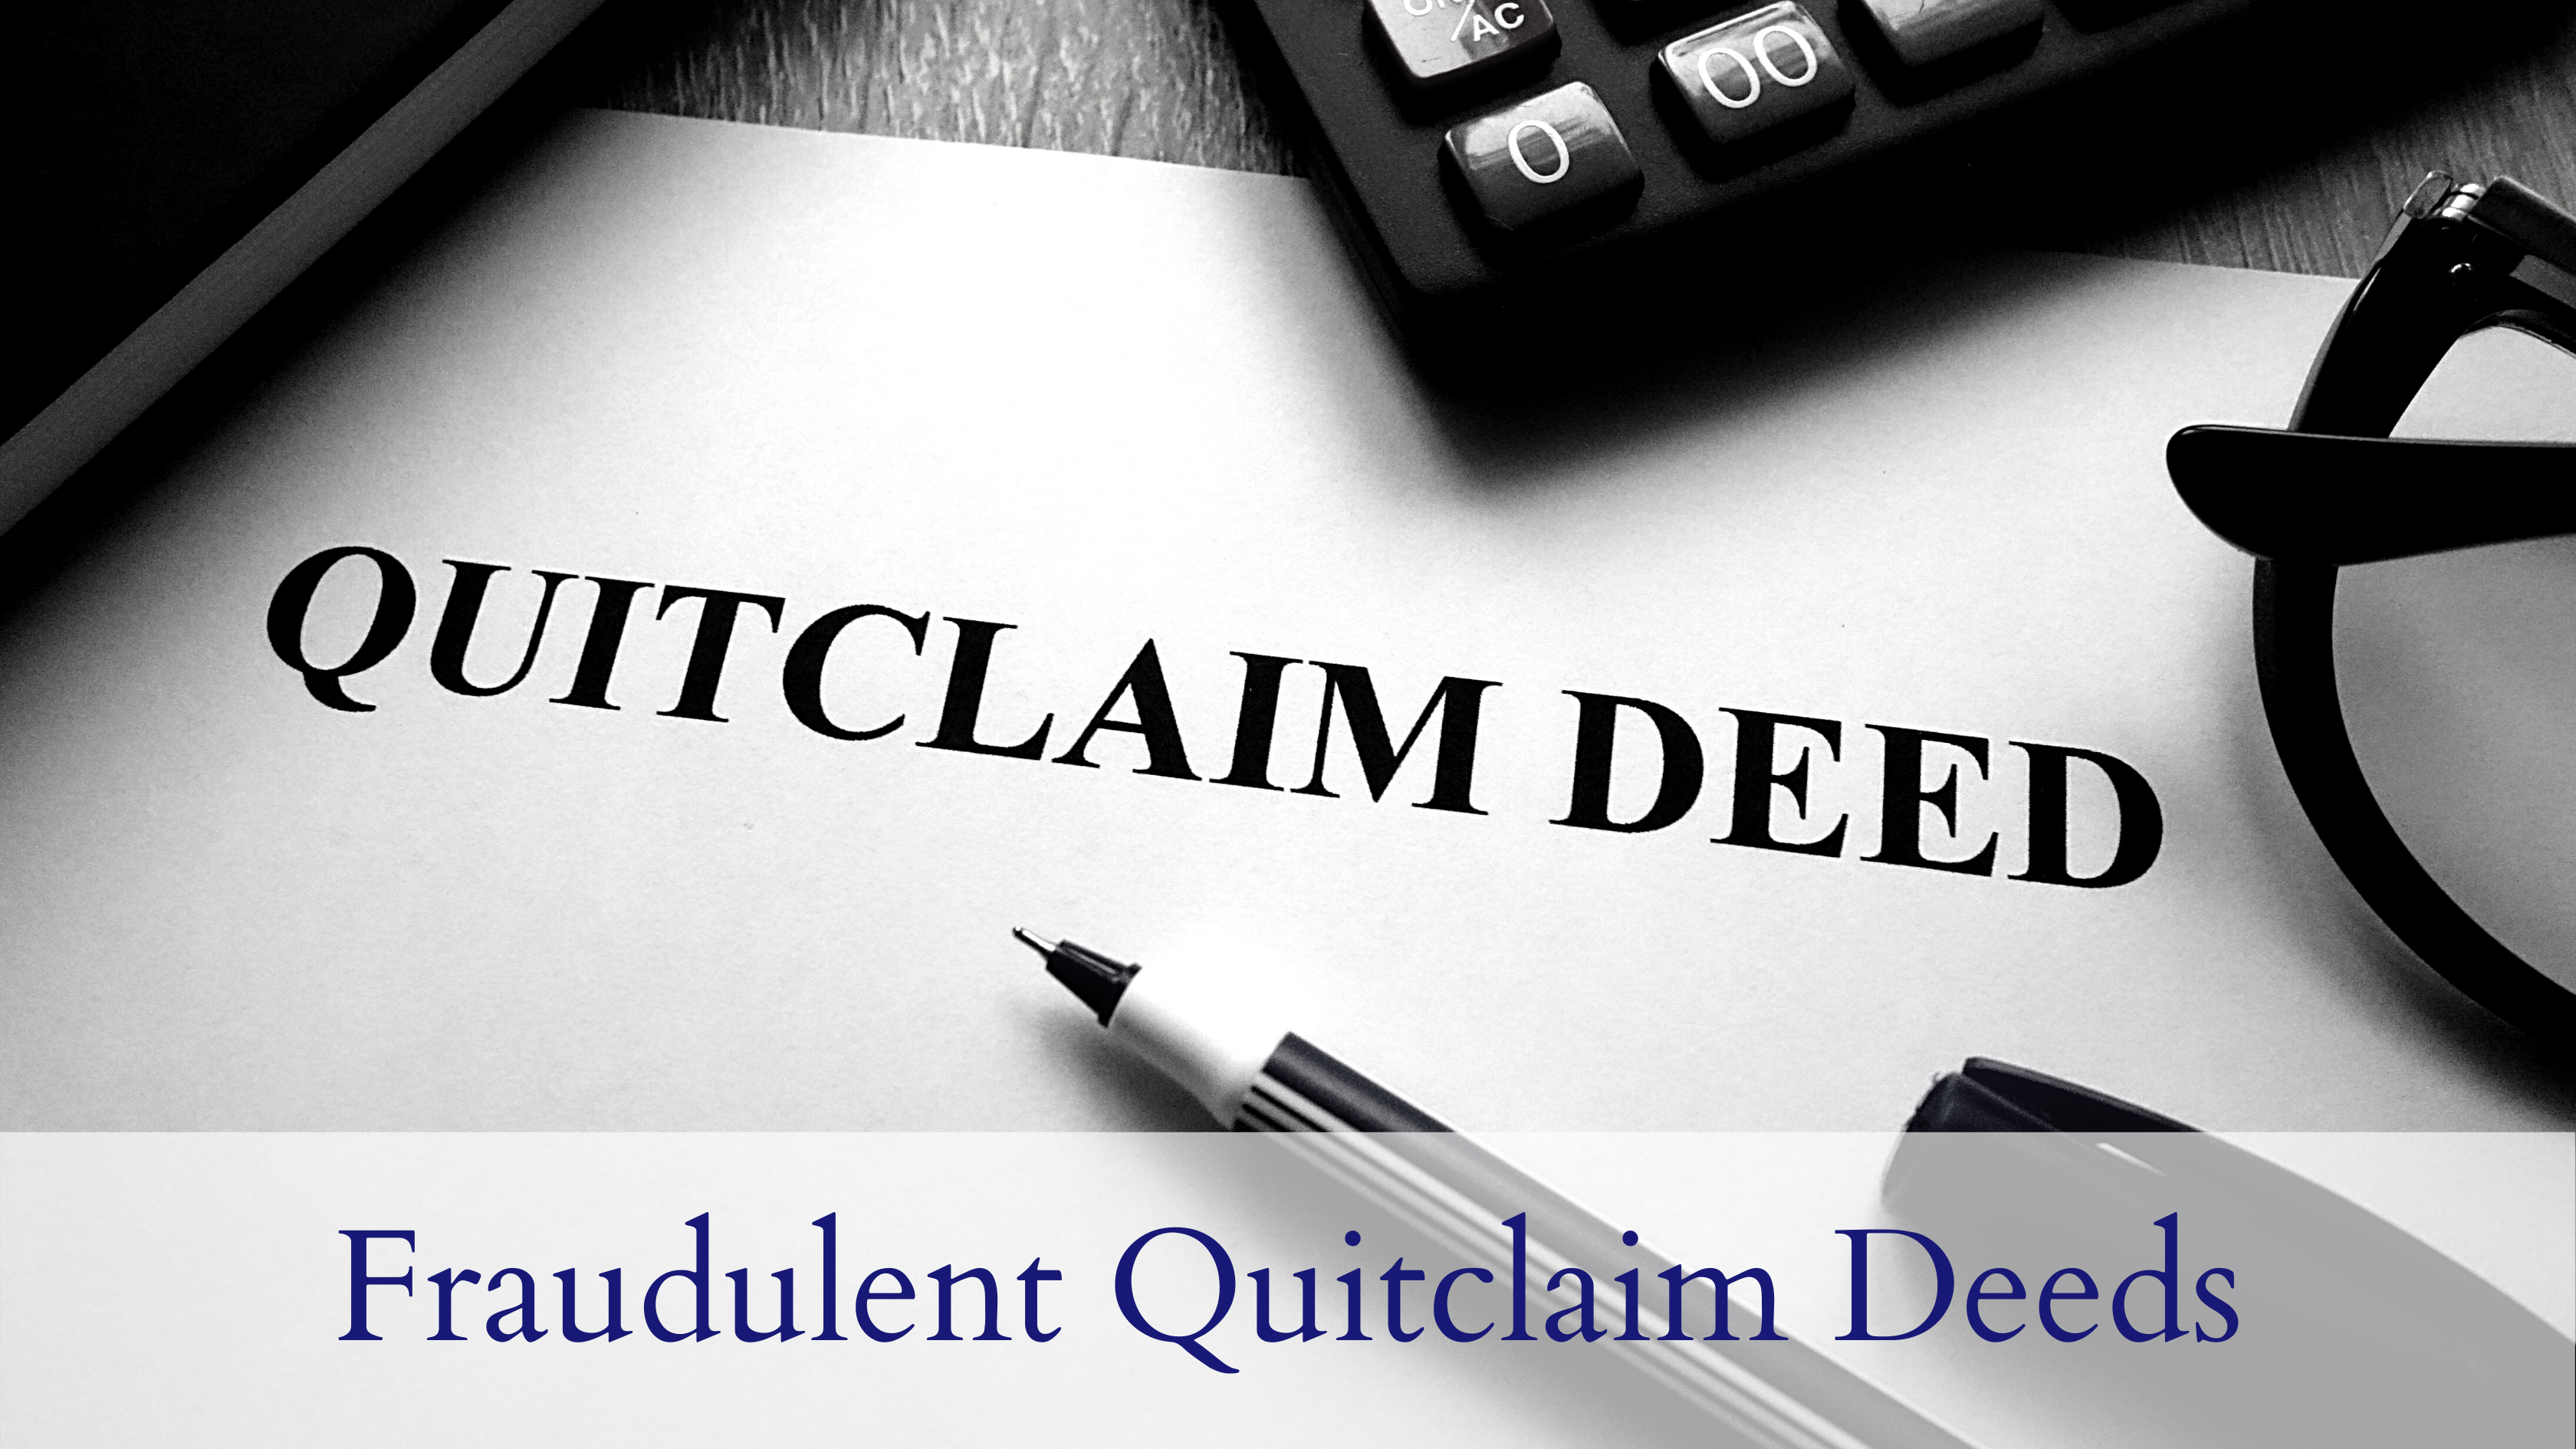 Fraudulent Quitclaim Deeds